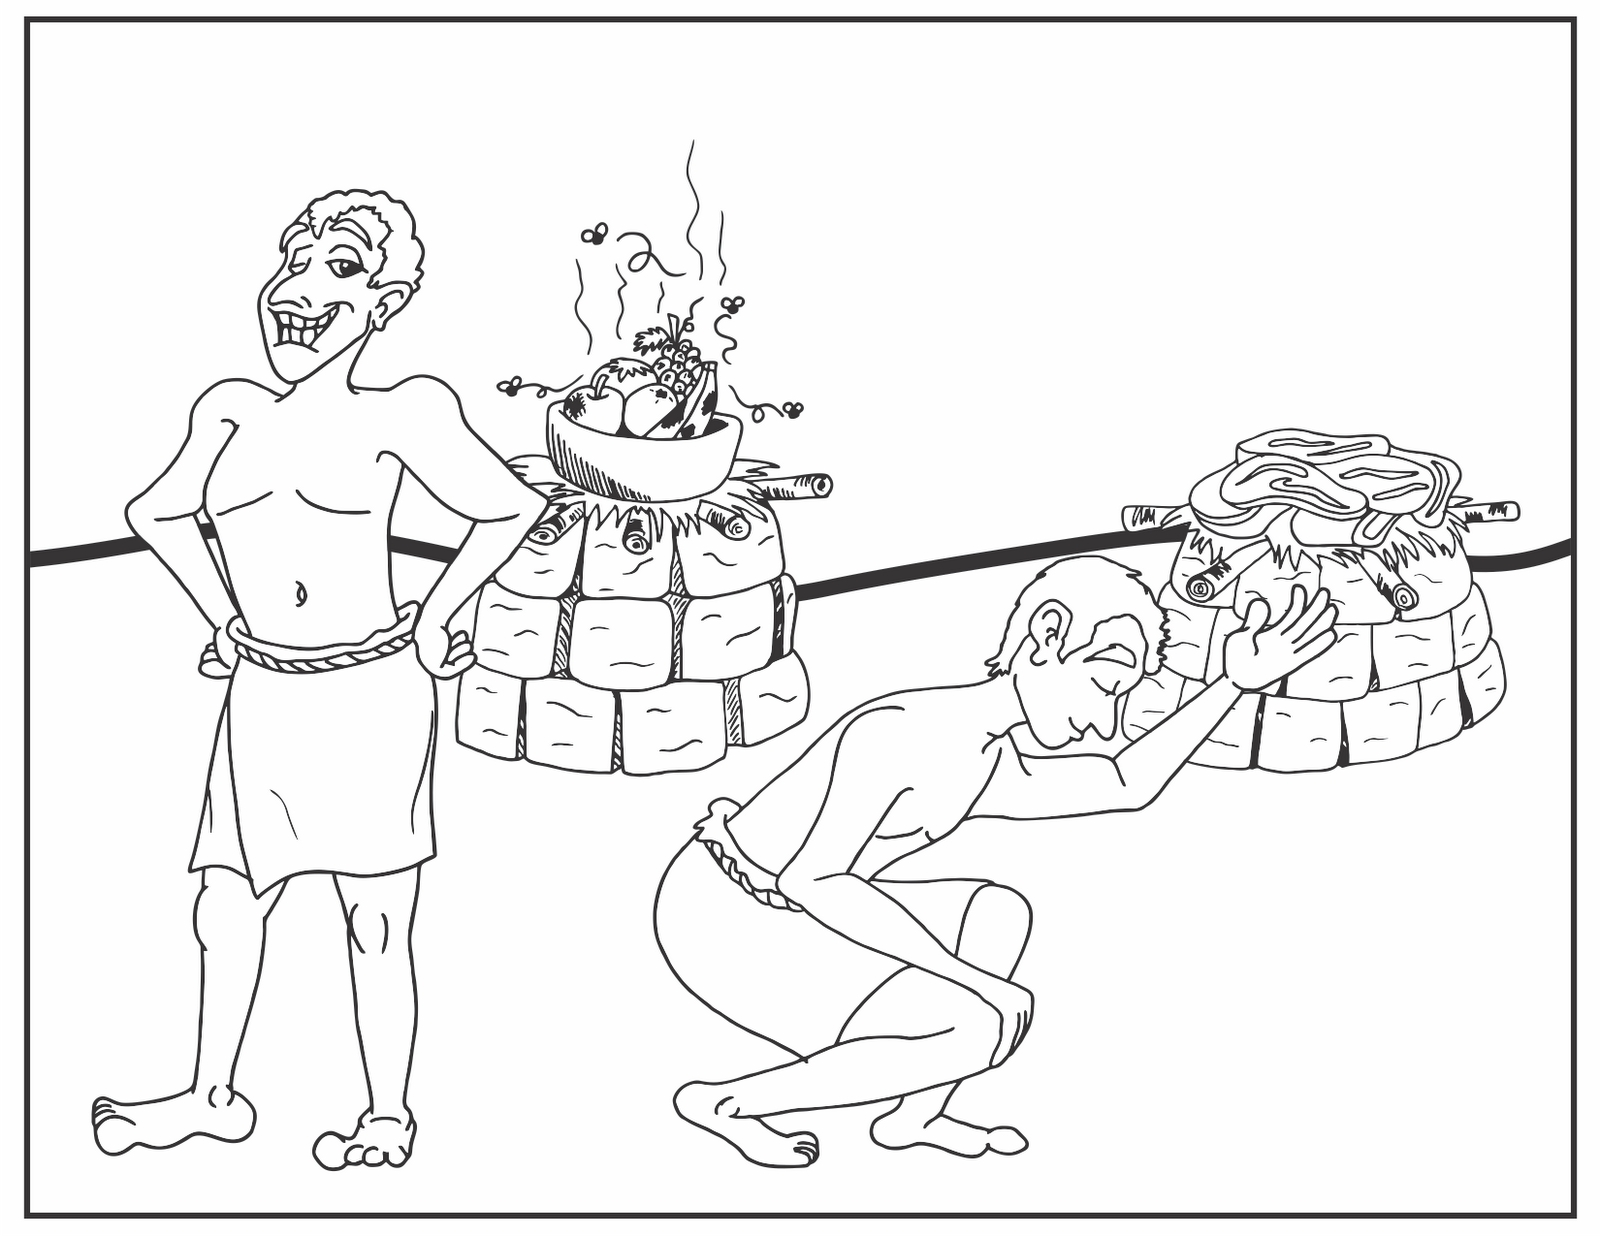 20 Cain and Abel Coloring Page Printable | FREE COLORING PAGES - Part 3